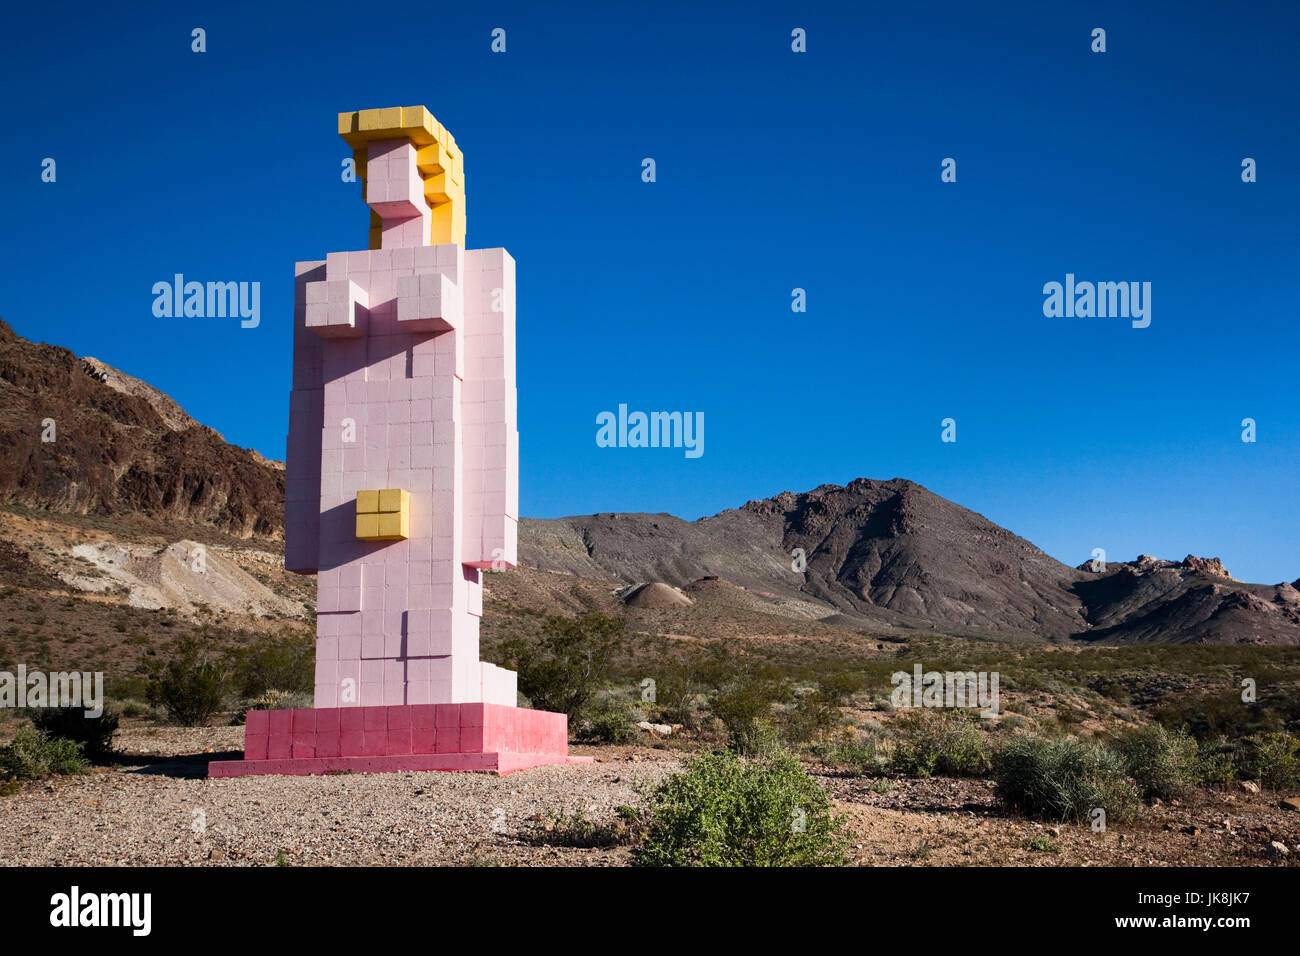 USA, Nevada, Great Basin, Beatty, Rhyolite Ghost Town, Goldwell Open Air Museum, Lady Desert by Dr. Hugo Heyrmann - Stock Image